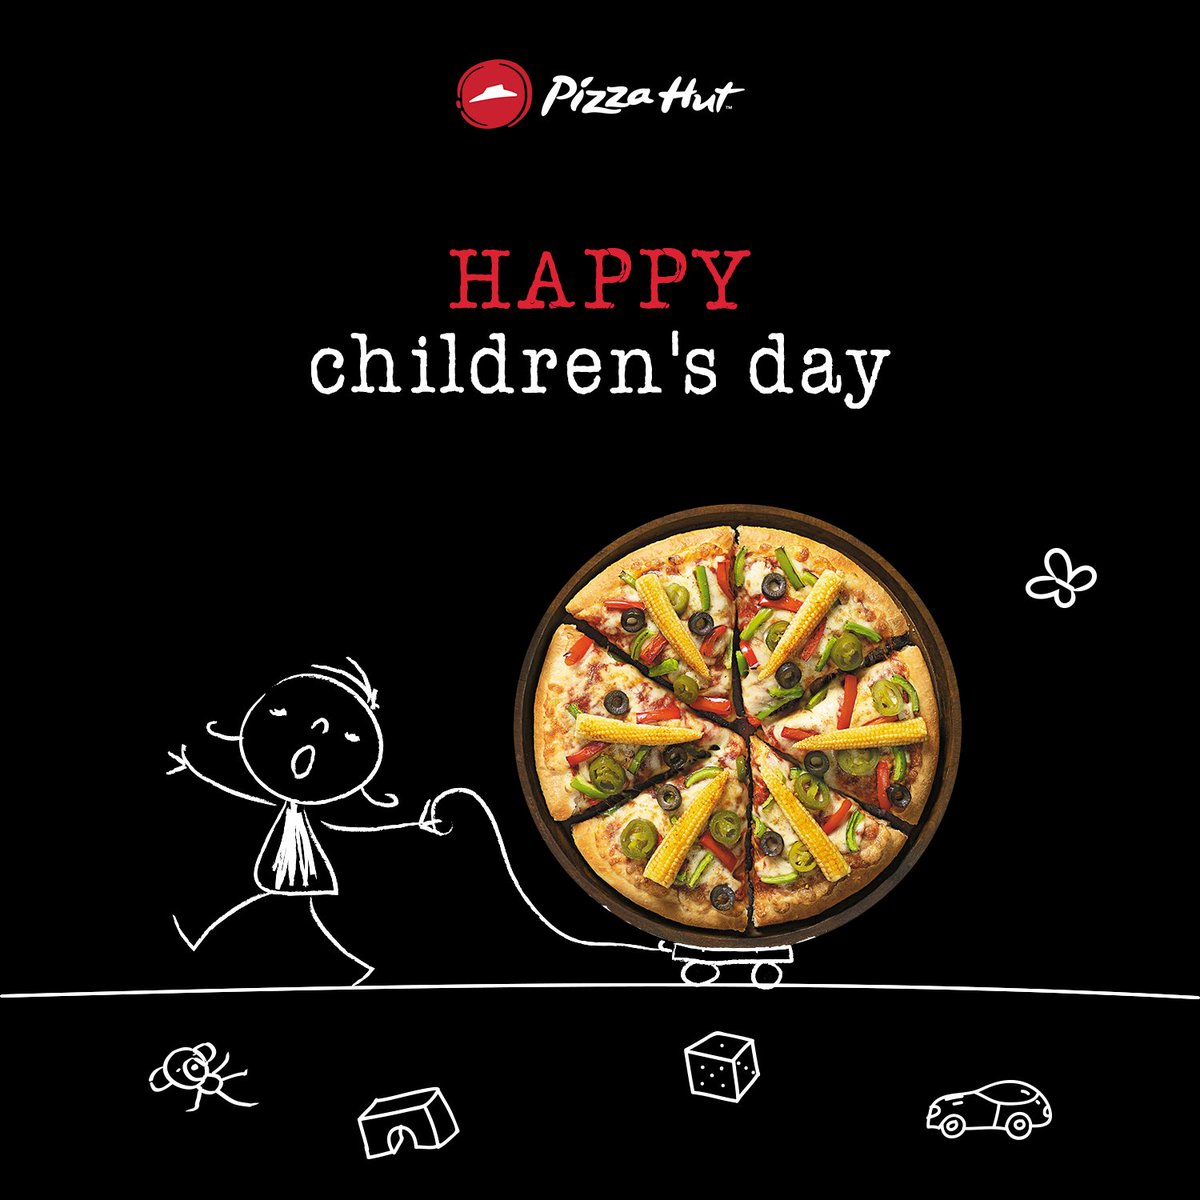 Pizza Hut wishes all the little ones a happy ChildrensDay https t.co U68GcyDNqb